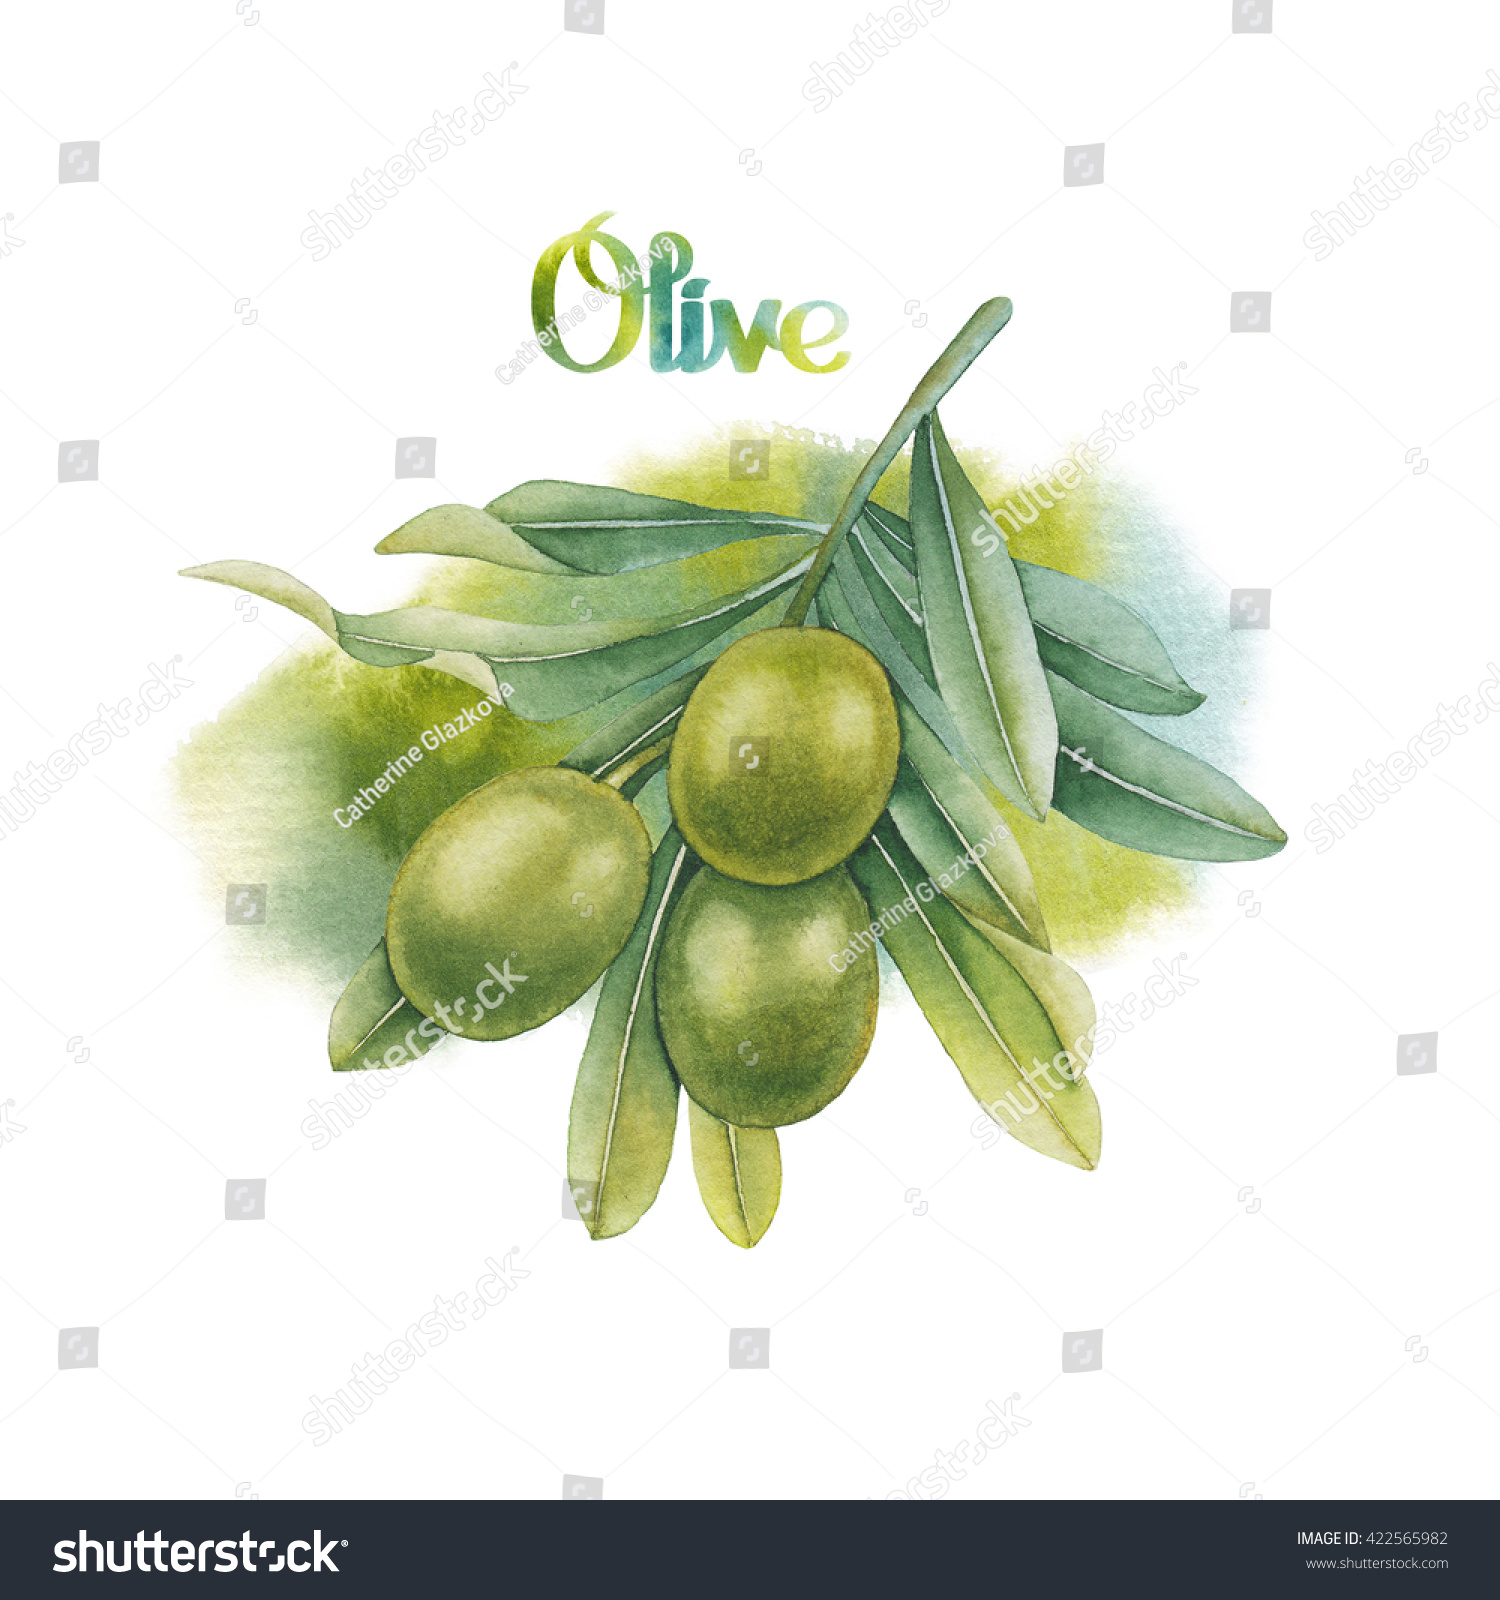 Watercolor Green Olive Branch Watercolor Texture Stock Illustration ...